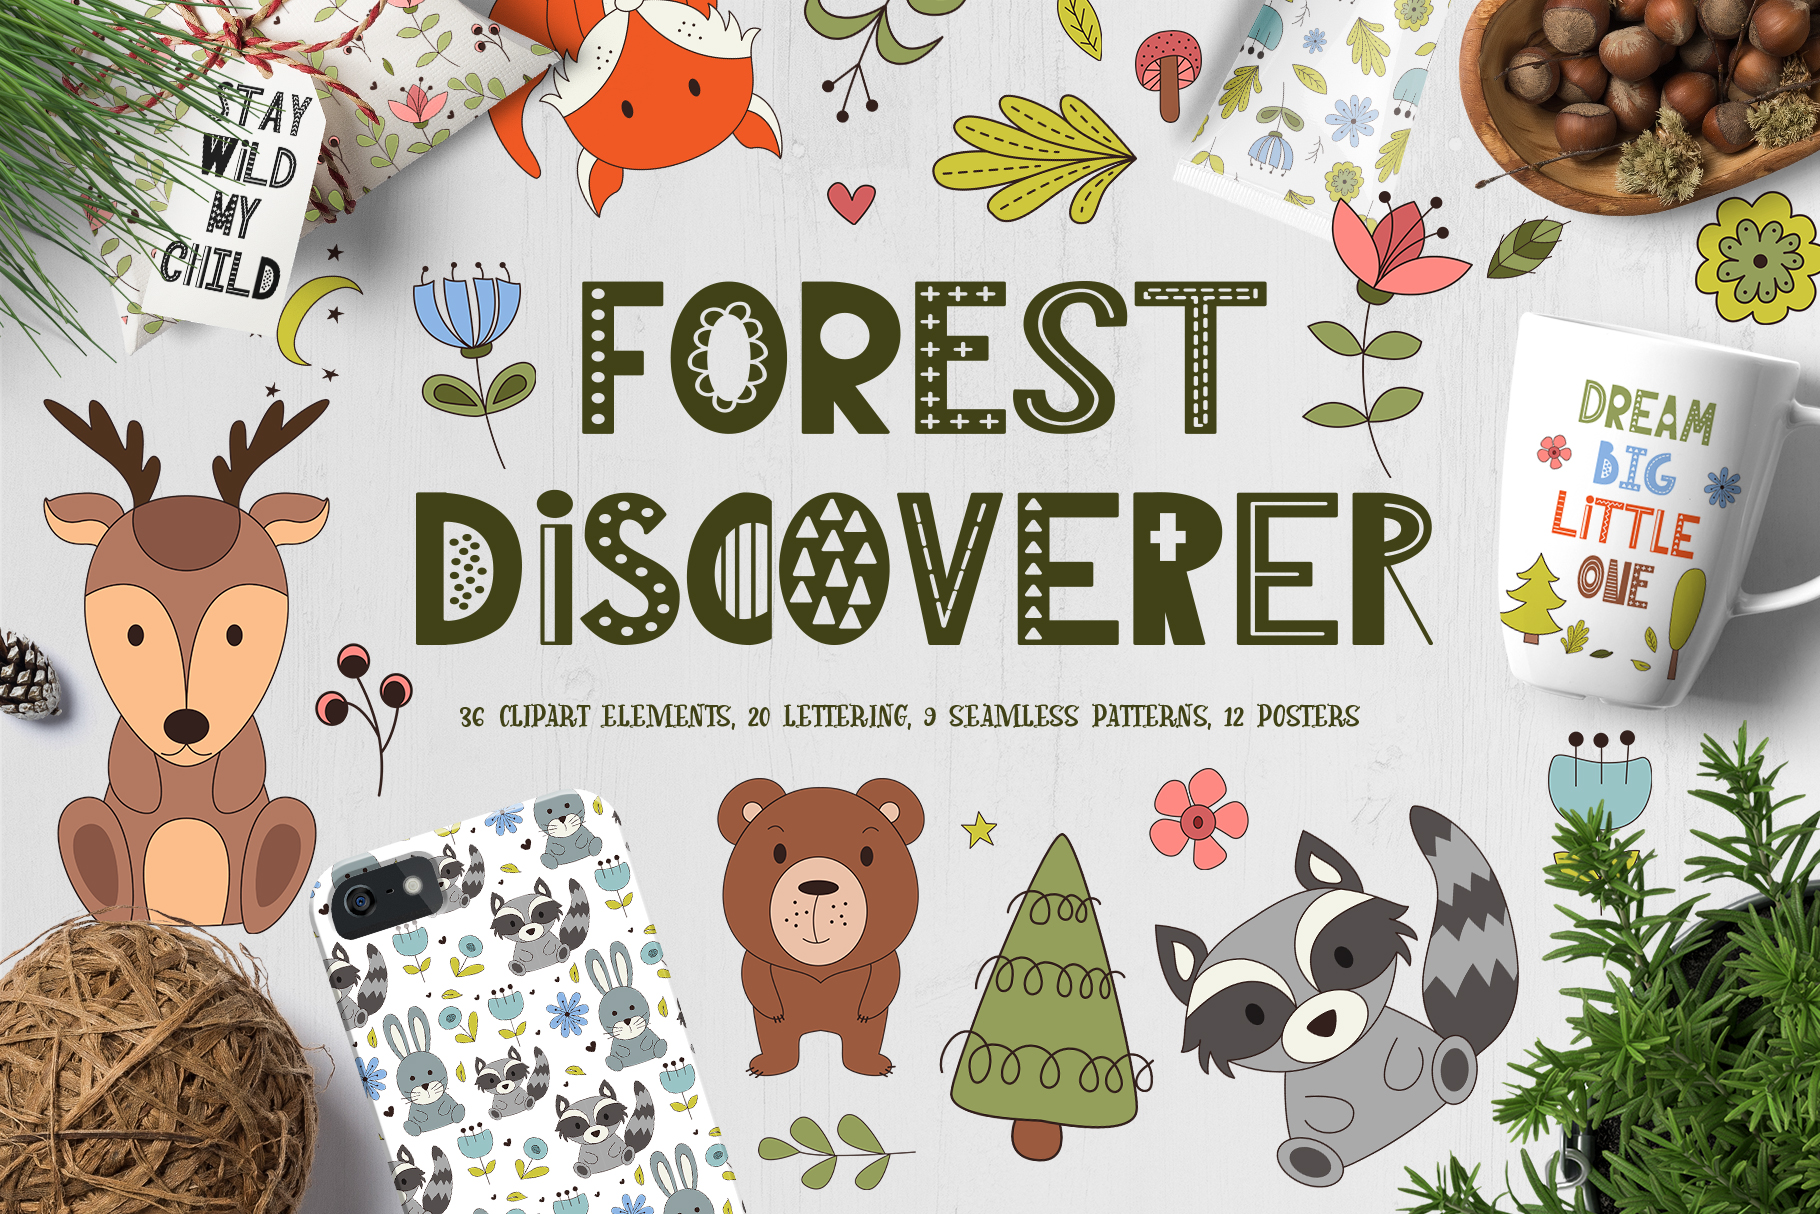 Download Free Forest Discoverer Clip Art Posters Graphic By Tregubova Jul for Cricut Explore, Silhouette and other cutting machines.